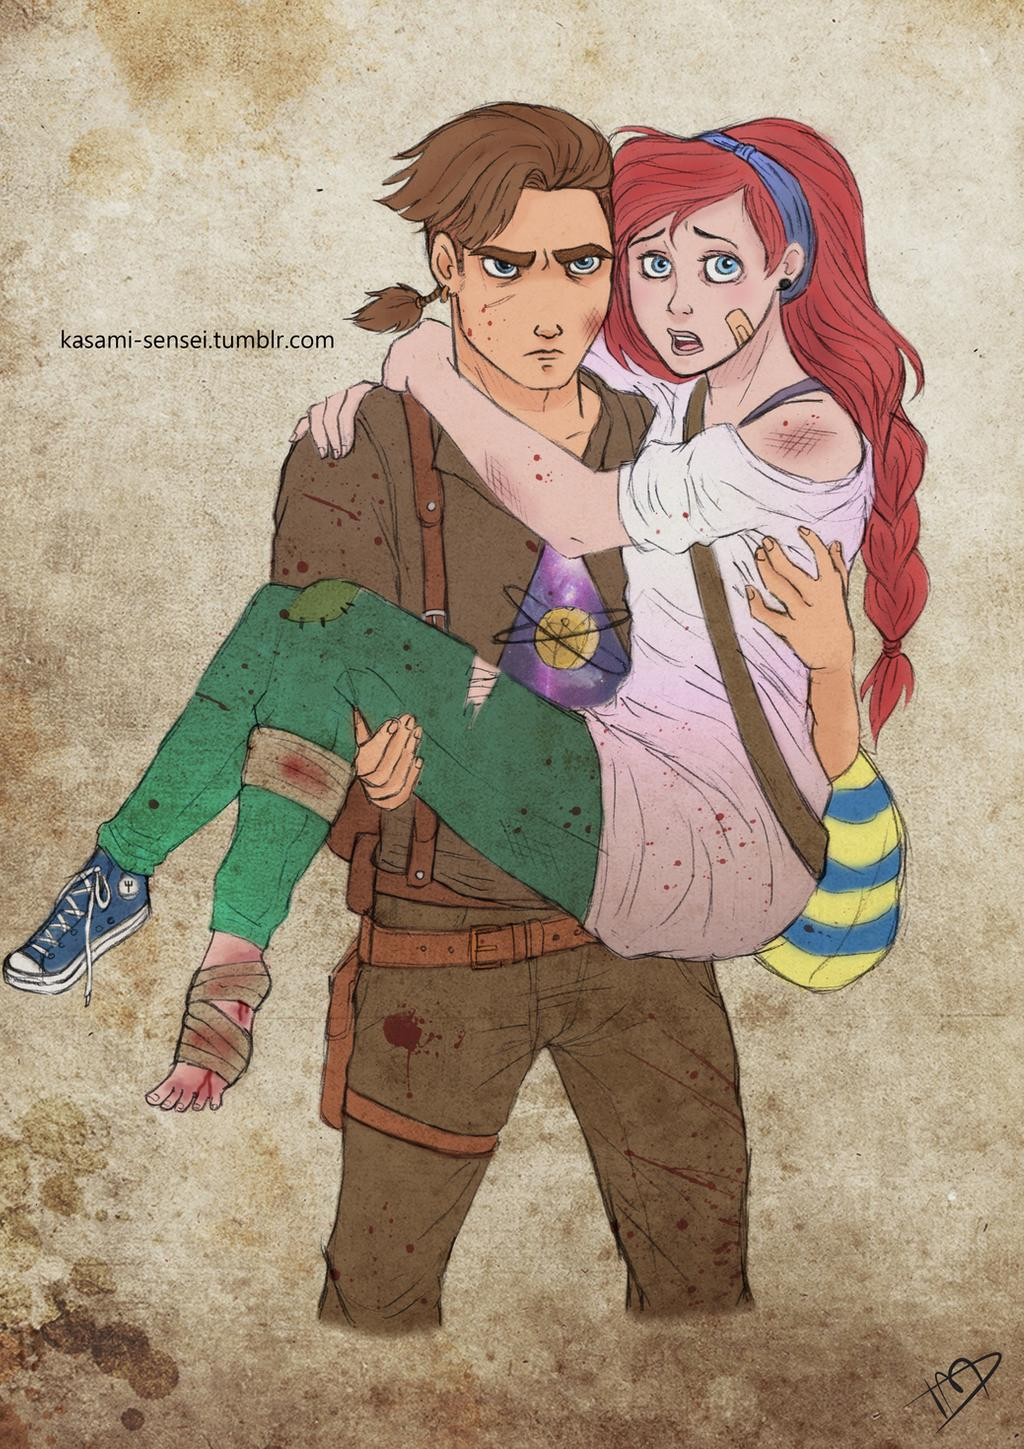 the_walking_disney___jim_and_ariel_by_kasami_sensei_d7prjj2-fullview.jpg